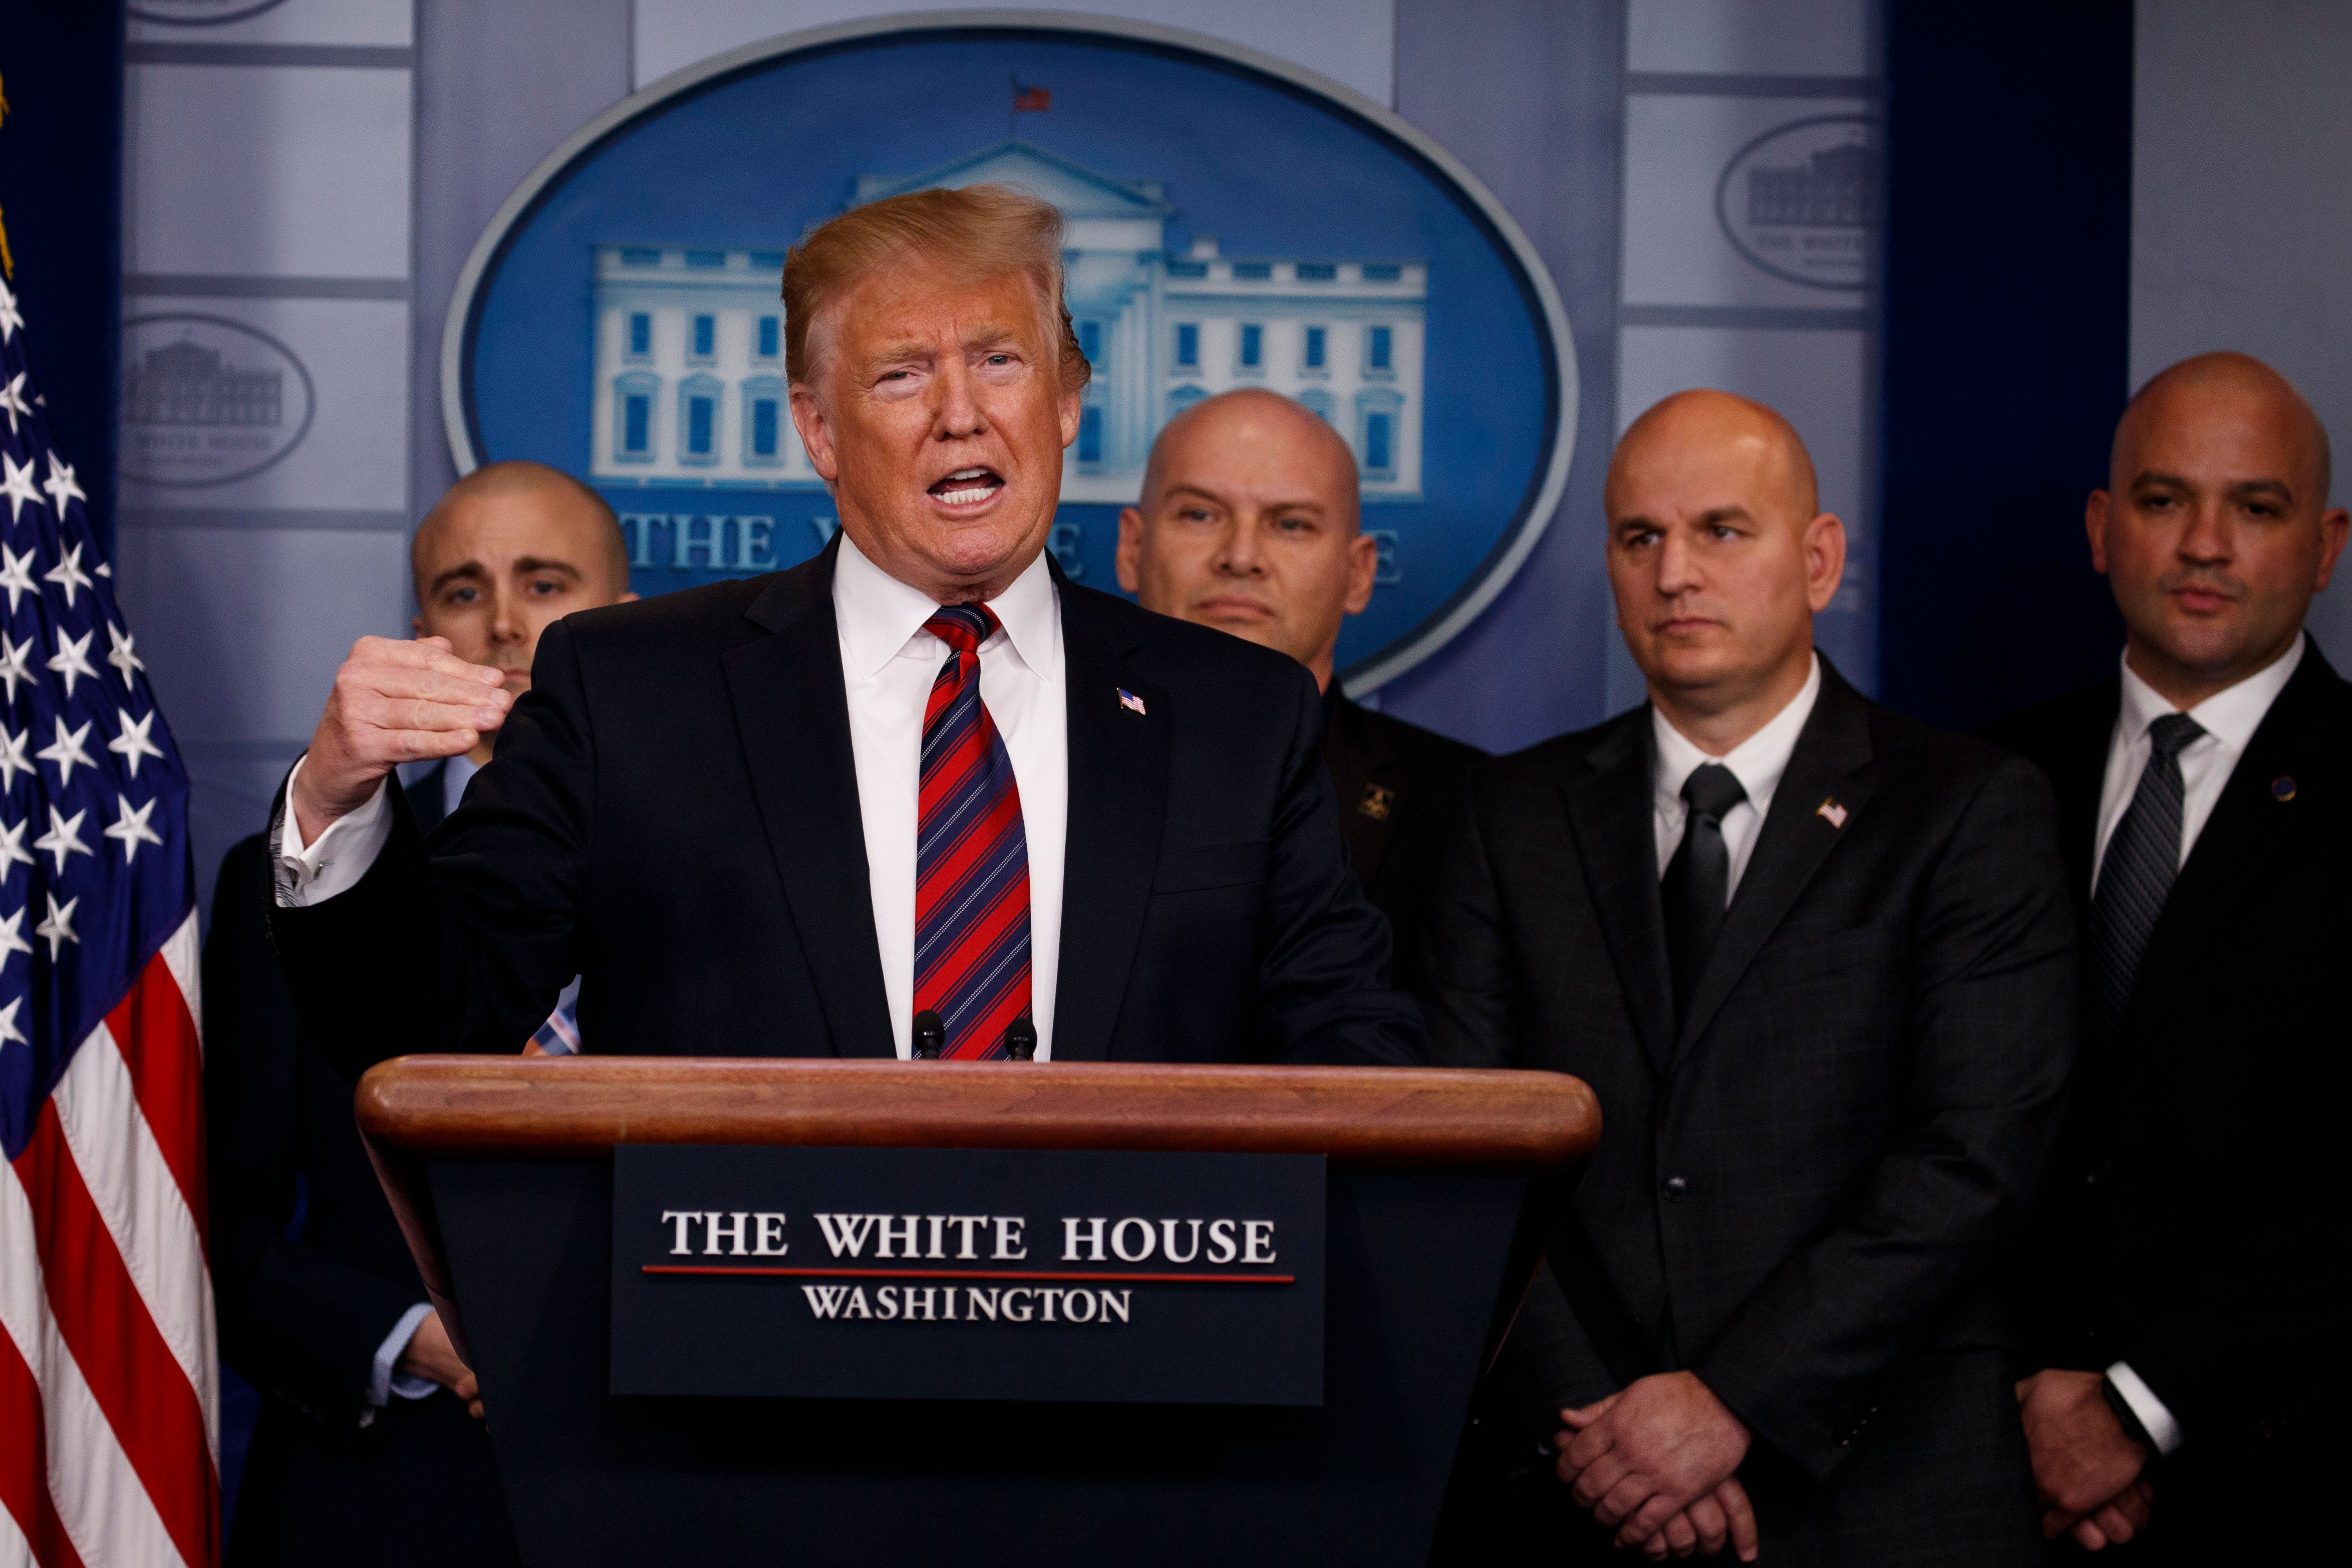 Trump Mocked For Holding Press Conference Flanked By Four Bald White